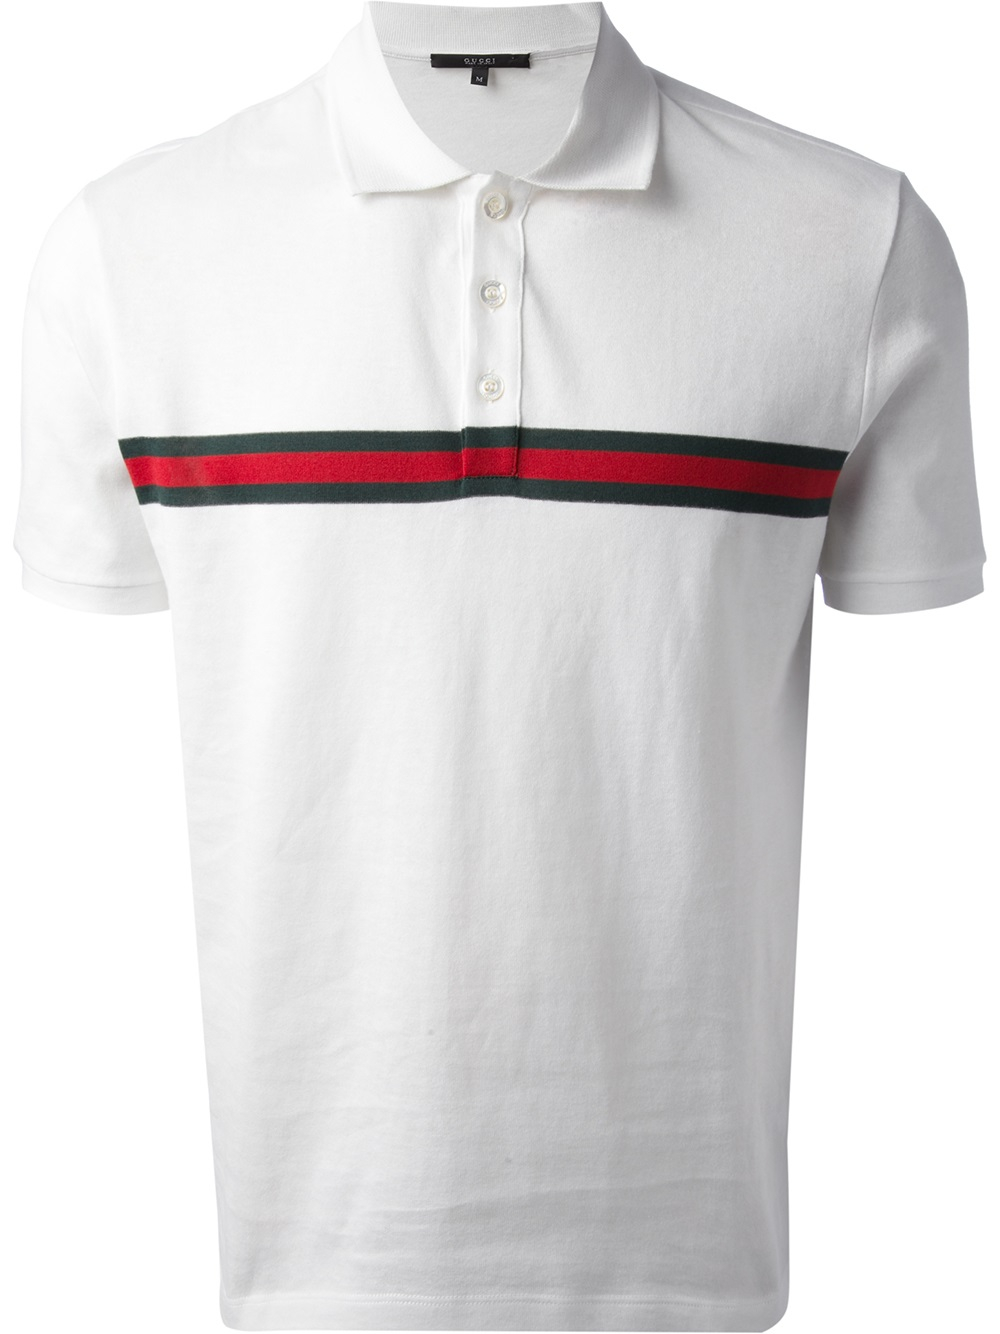 gucci short sleeve polo shirt in white for men lyst. Black Bedroom Furniture Sets. Home Design Ideas